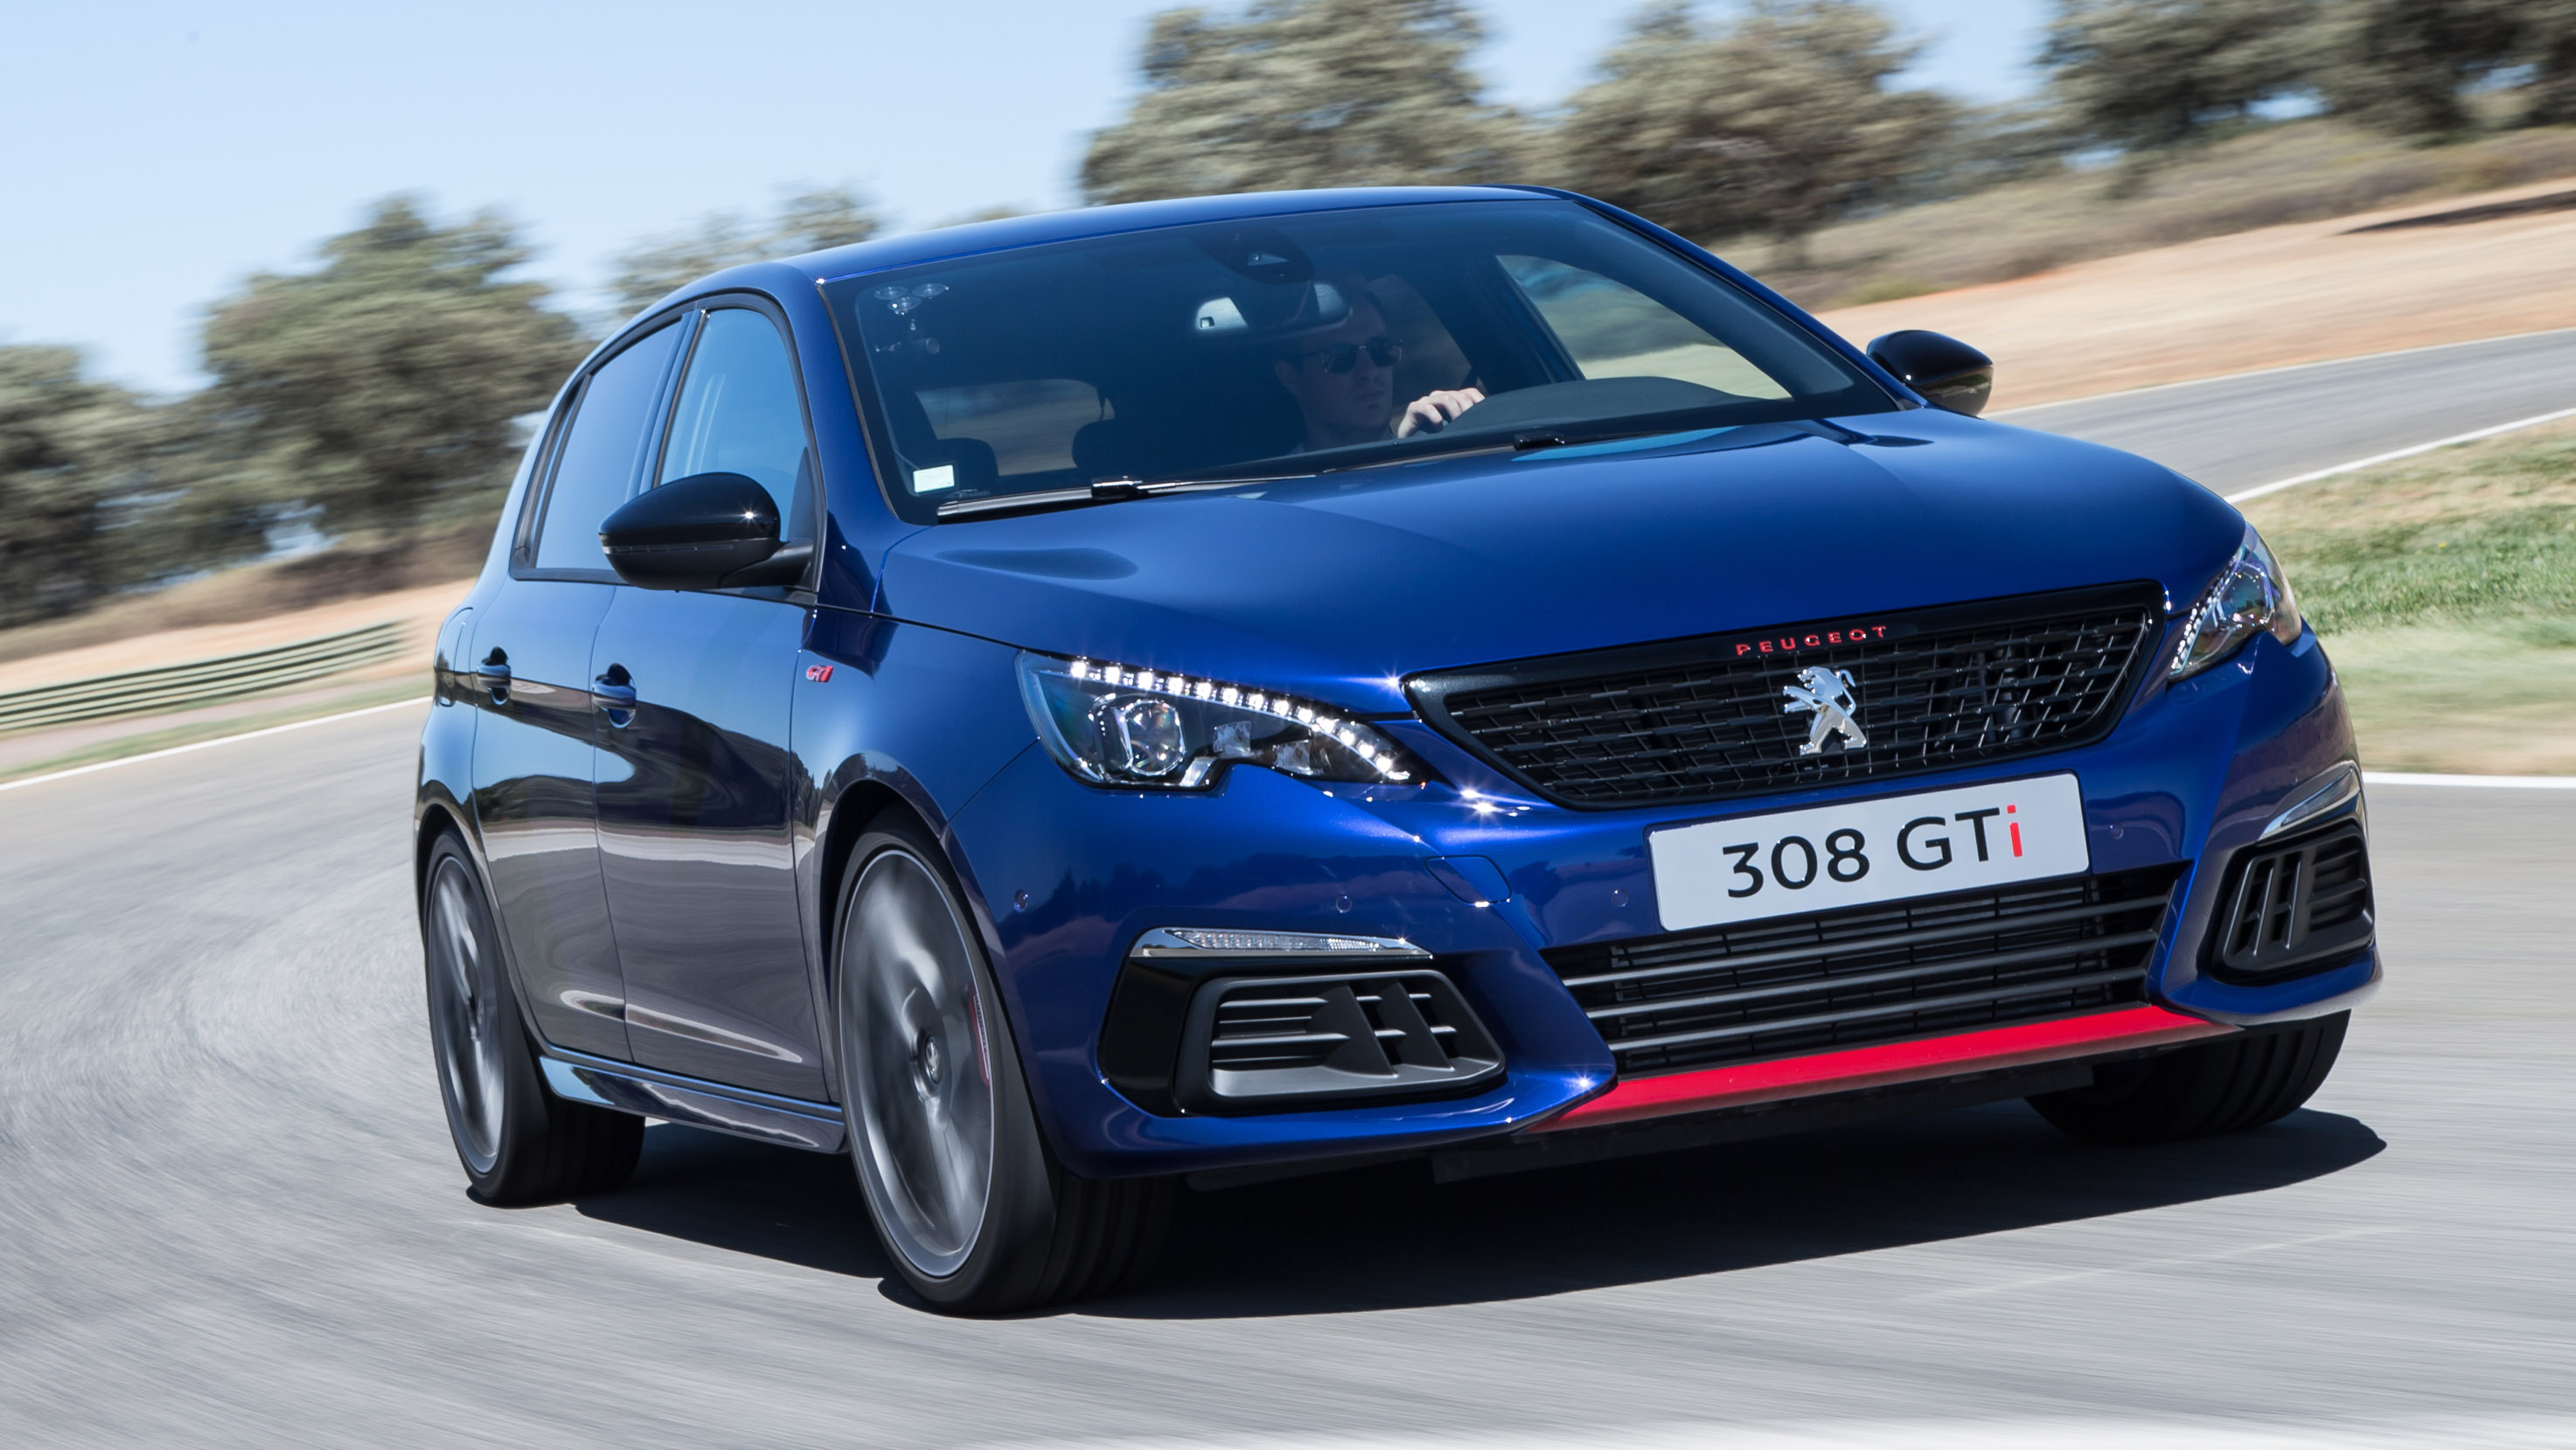 peugeot s hottest hatch 308 gti 270 review 2017 2018 top gear. Black Bedroom Furniture Sets. Home Design Ideas